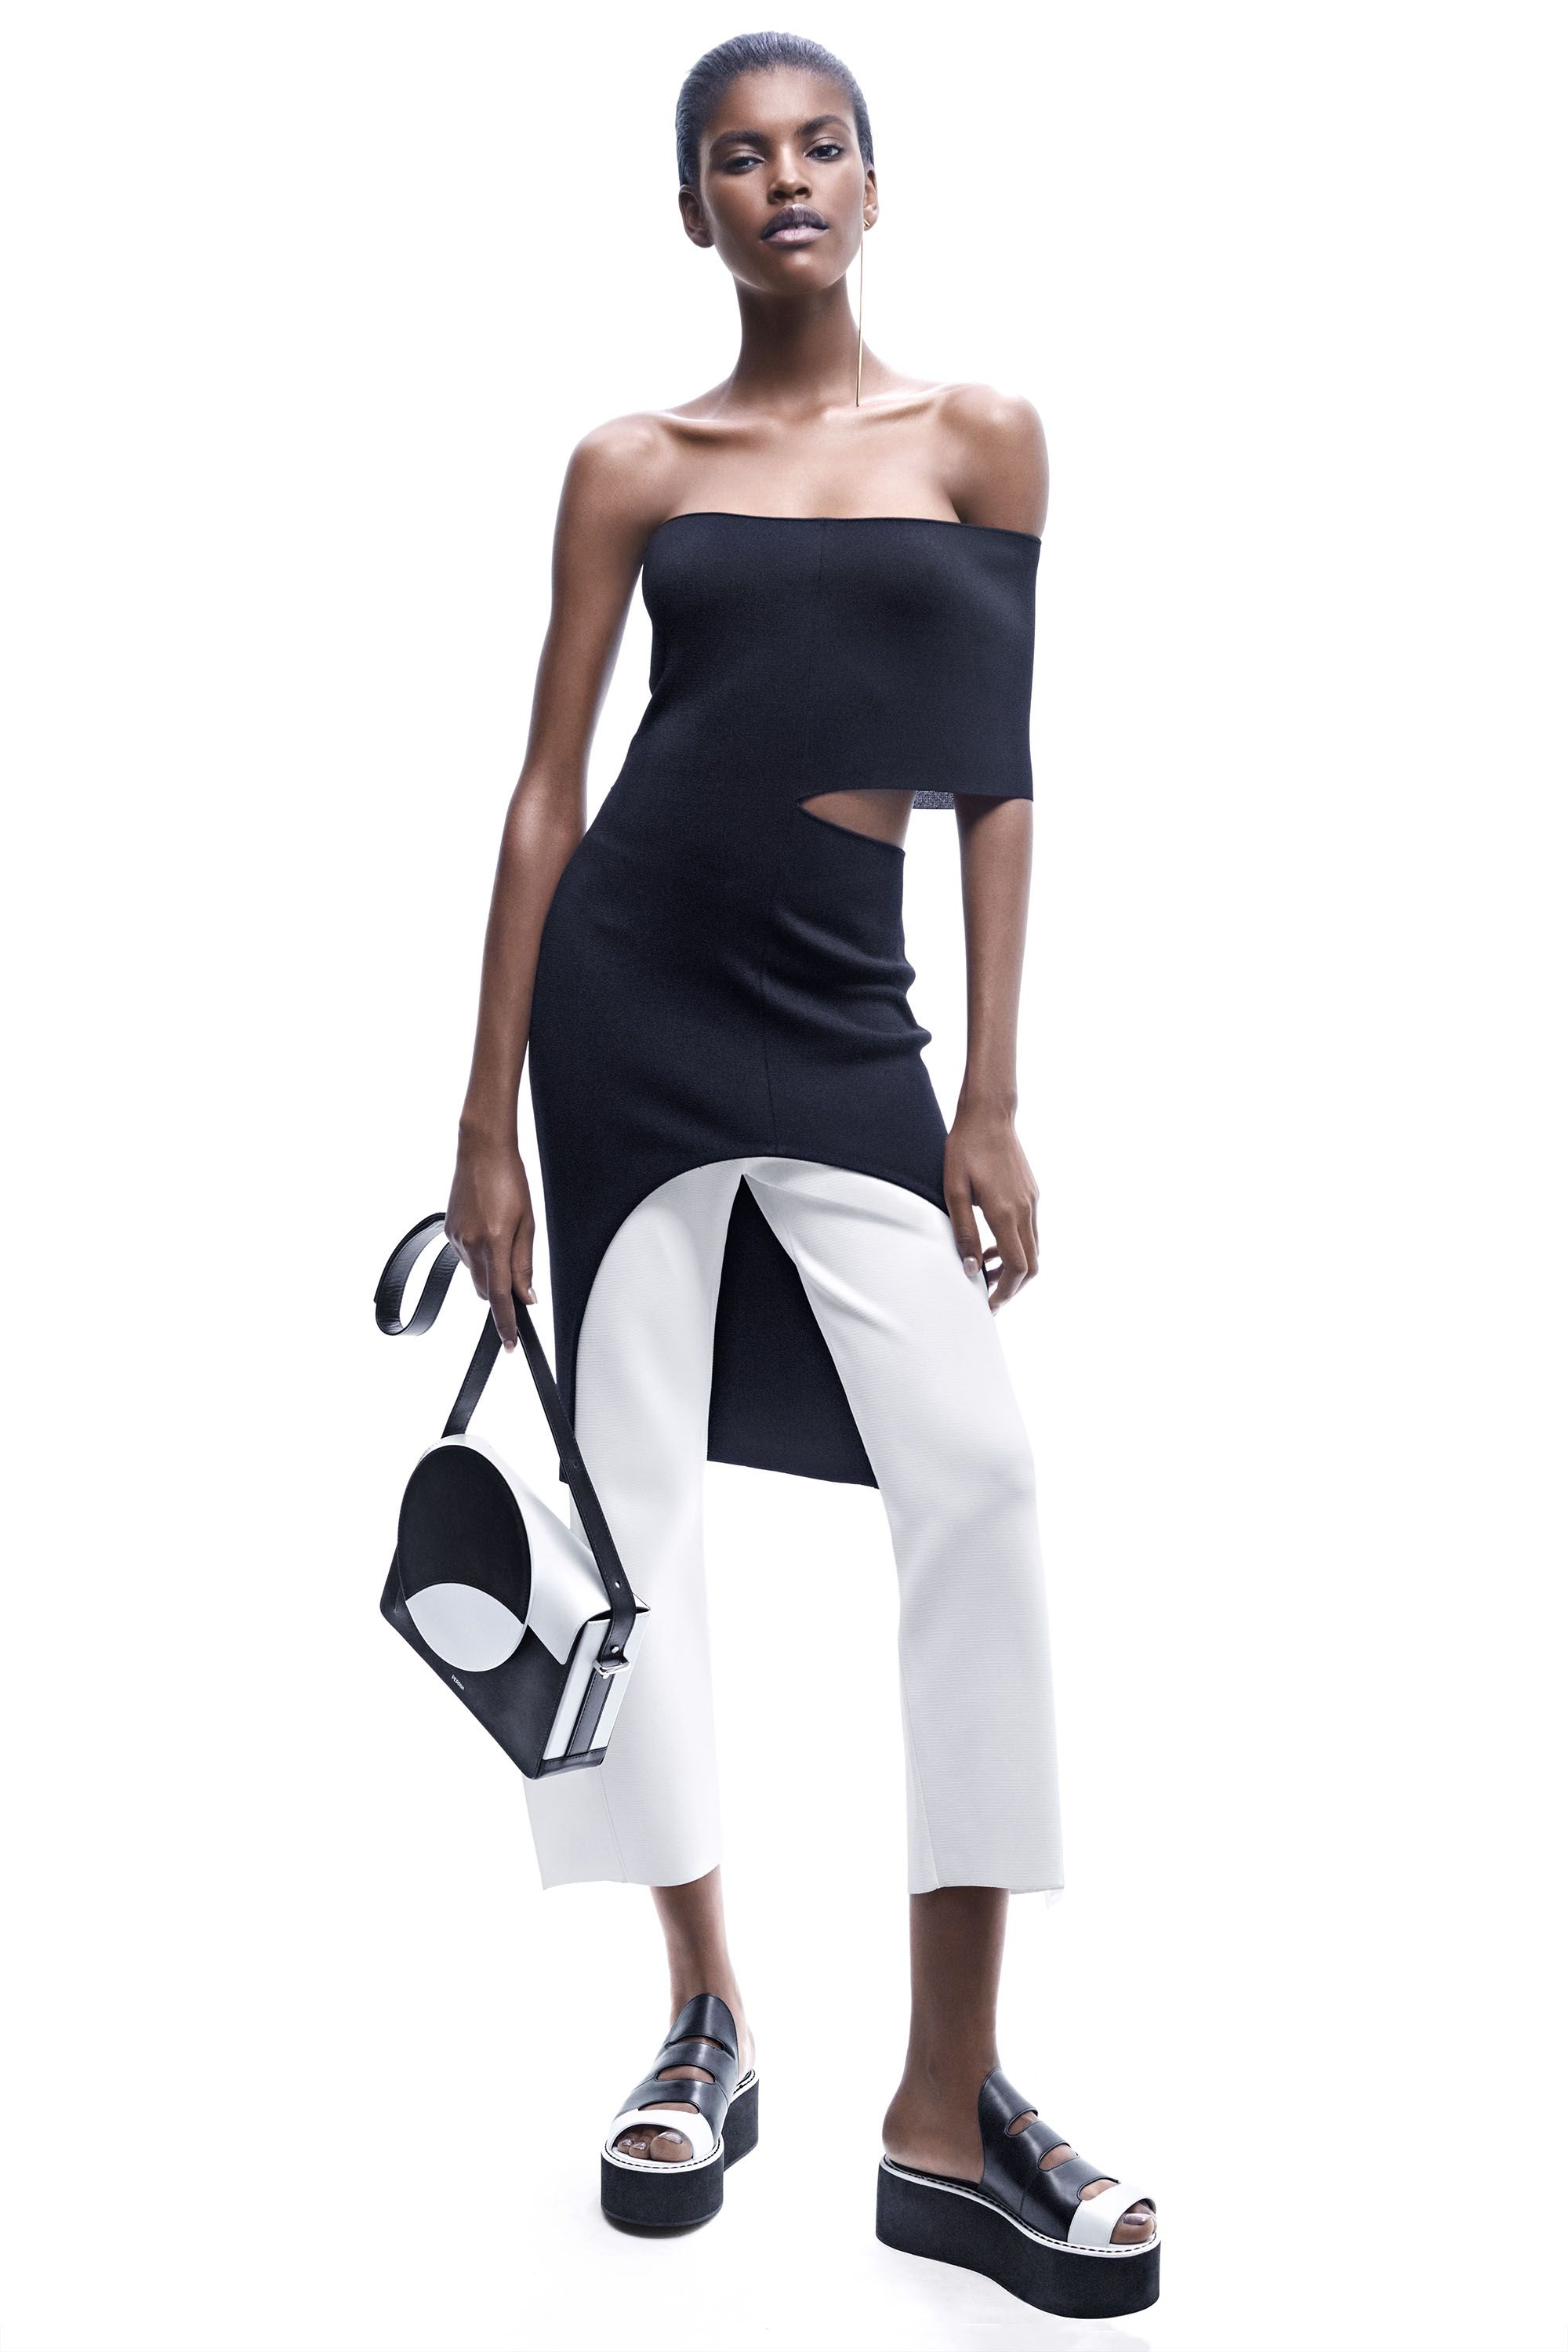 "<p><em><a href=""http://www.stellamccartney.com/us"" target=""_blank"">Stella McCartney</a> dress, $1,340, and pants, $1,270, 212-255-1556; <a href=""http://www.tuleste.com/"" target=""_blank"">Tuleste</a> </em><span class=""redactor-invisible-space""><em>earrings, $195, <a href=""http://nordstrom.com"" target=""_blank"">nordstrom.com</a>; <a href=""http://perrinparis.com/en/"" target=""_blank"">Perrin Paris</a> </em><span class=""redactor-invisible-space""><em>bag, $1,950, <a href=""http://perrinparis.com"" target=""_blank"">perrinparis.com</a>; <a href=""http://www.fendi.com/us/"" target=""_blank"">Fendi</a> </em><span class=""redactor-invisible-space""><em>sandals, $795, 212-897-2244.</em></span></span></span></p>"